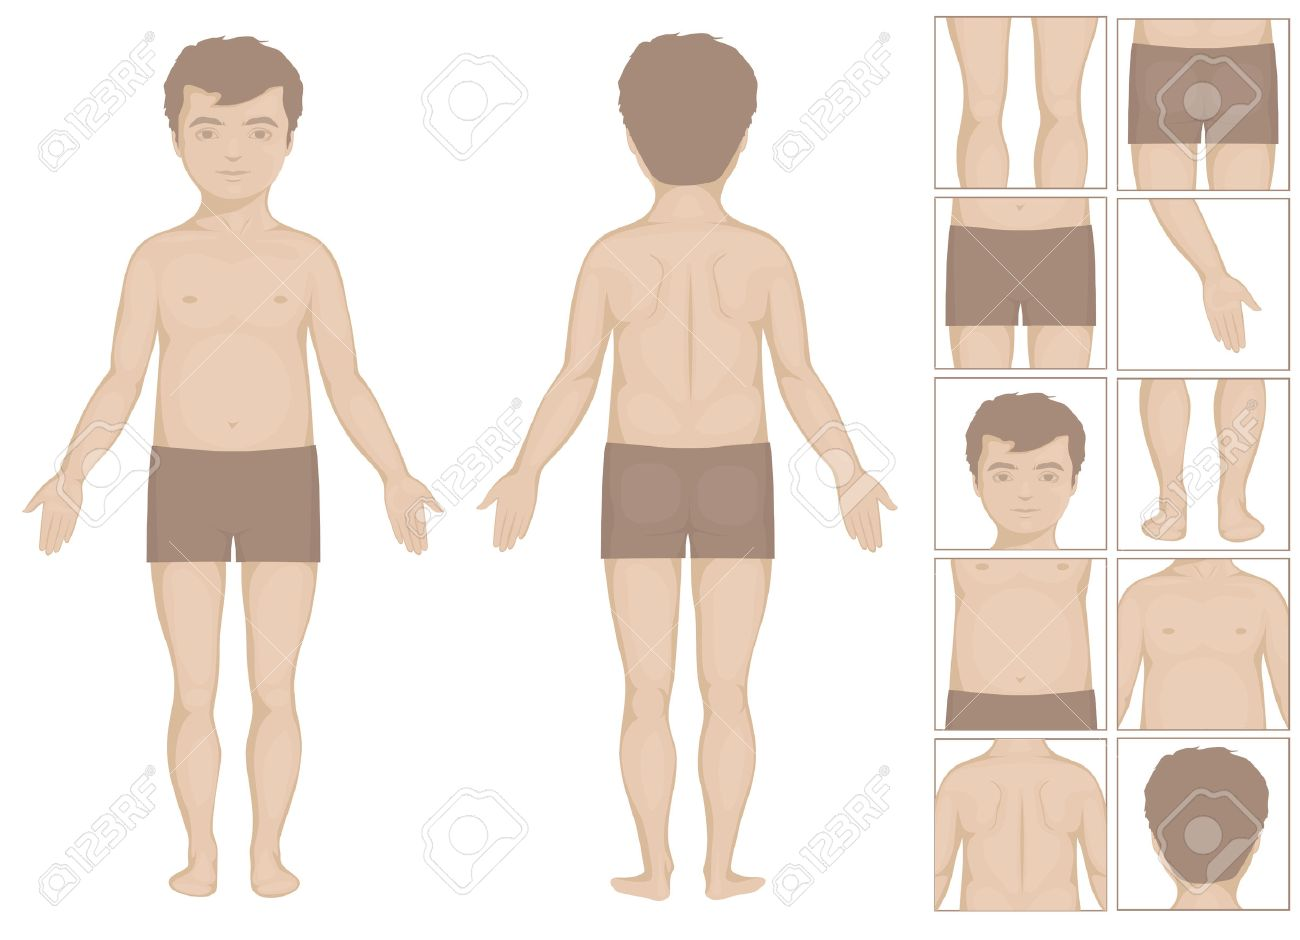 Body Parts Stock Photos Royalty Free Body Parts Images